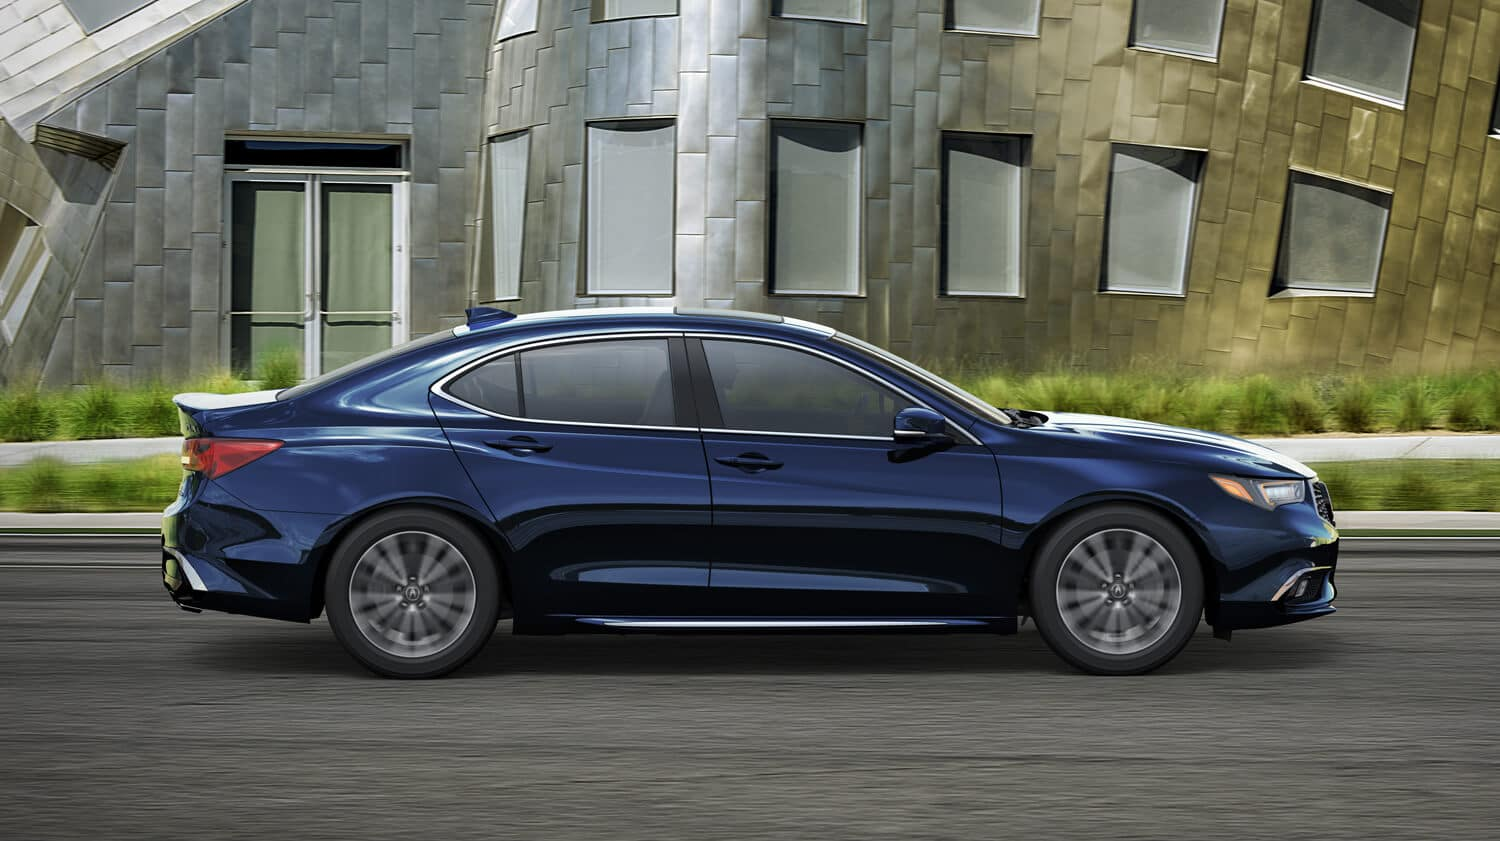 2019 Acura TLX Exterior City Side Profile Blue